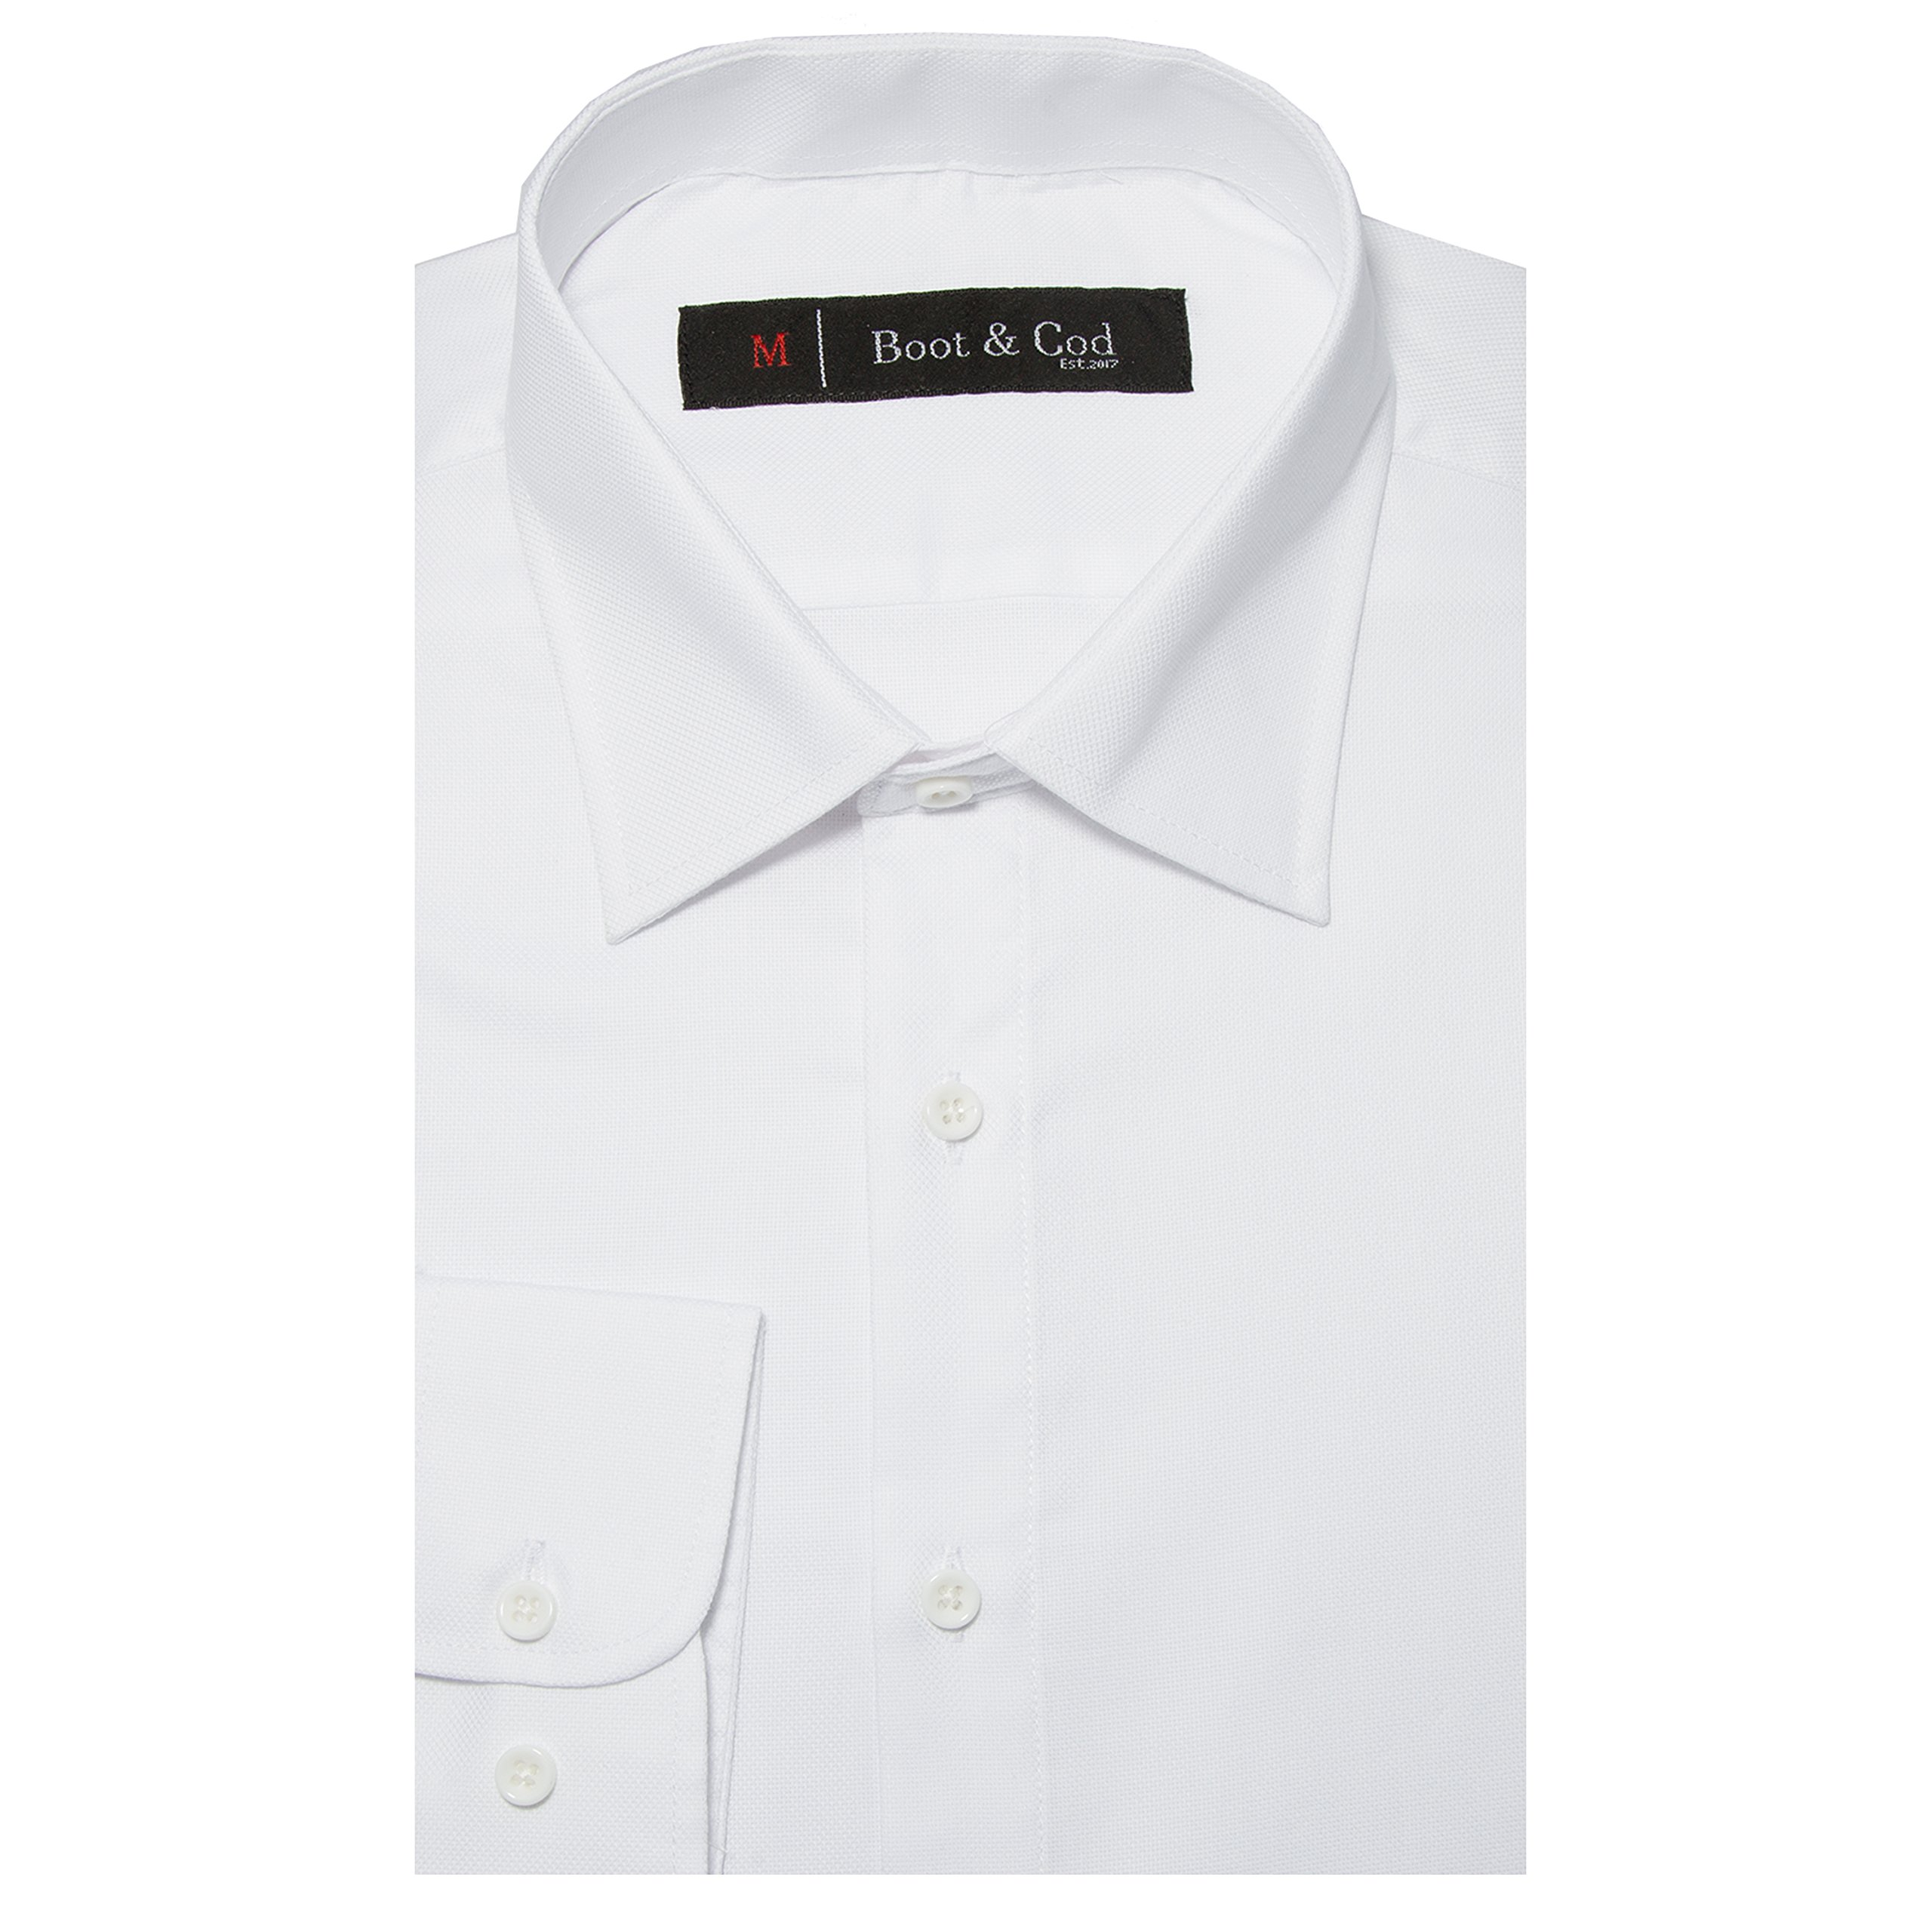 Boot & Cod Men's Classic White Fitted Long Sleeve Button Down Dress Shirt - XXL by Boot & Cod (Image #1)